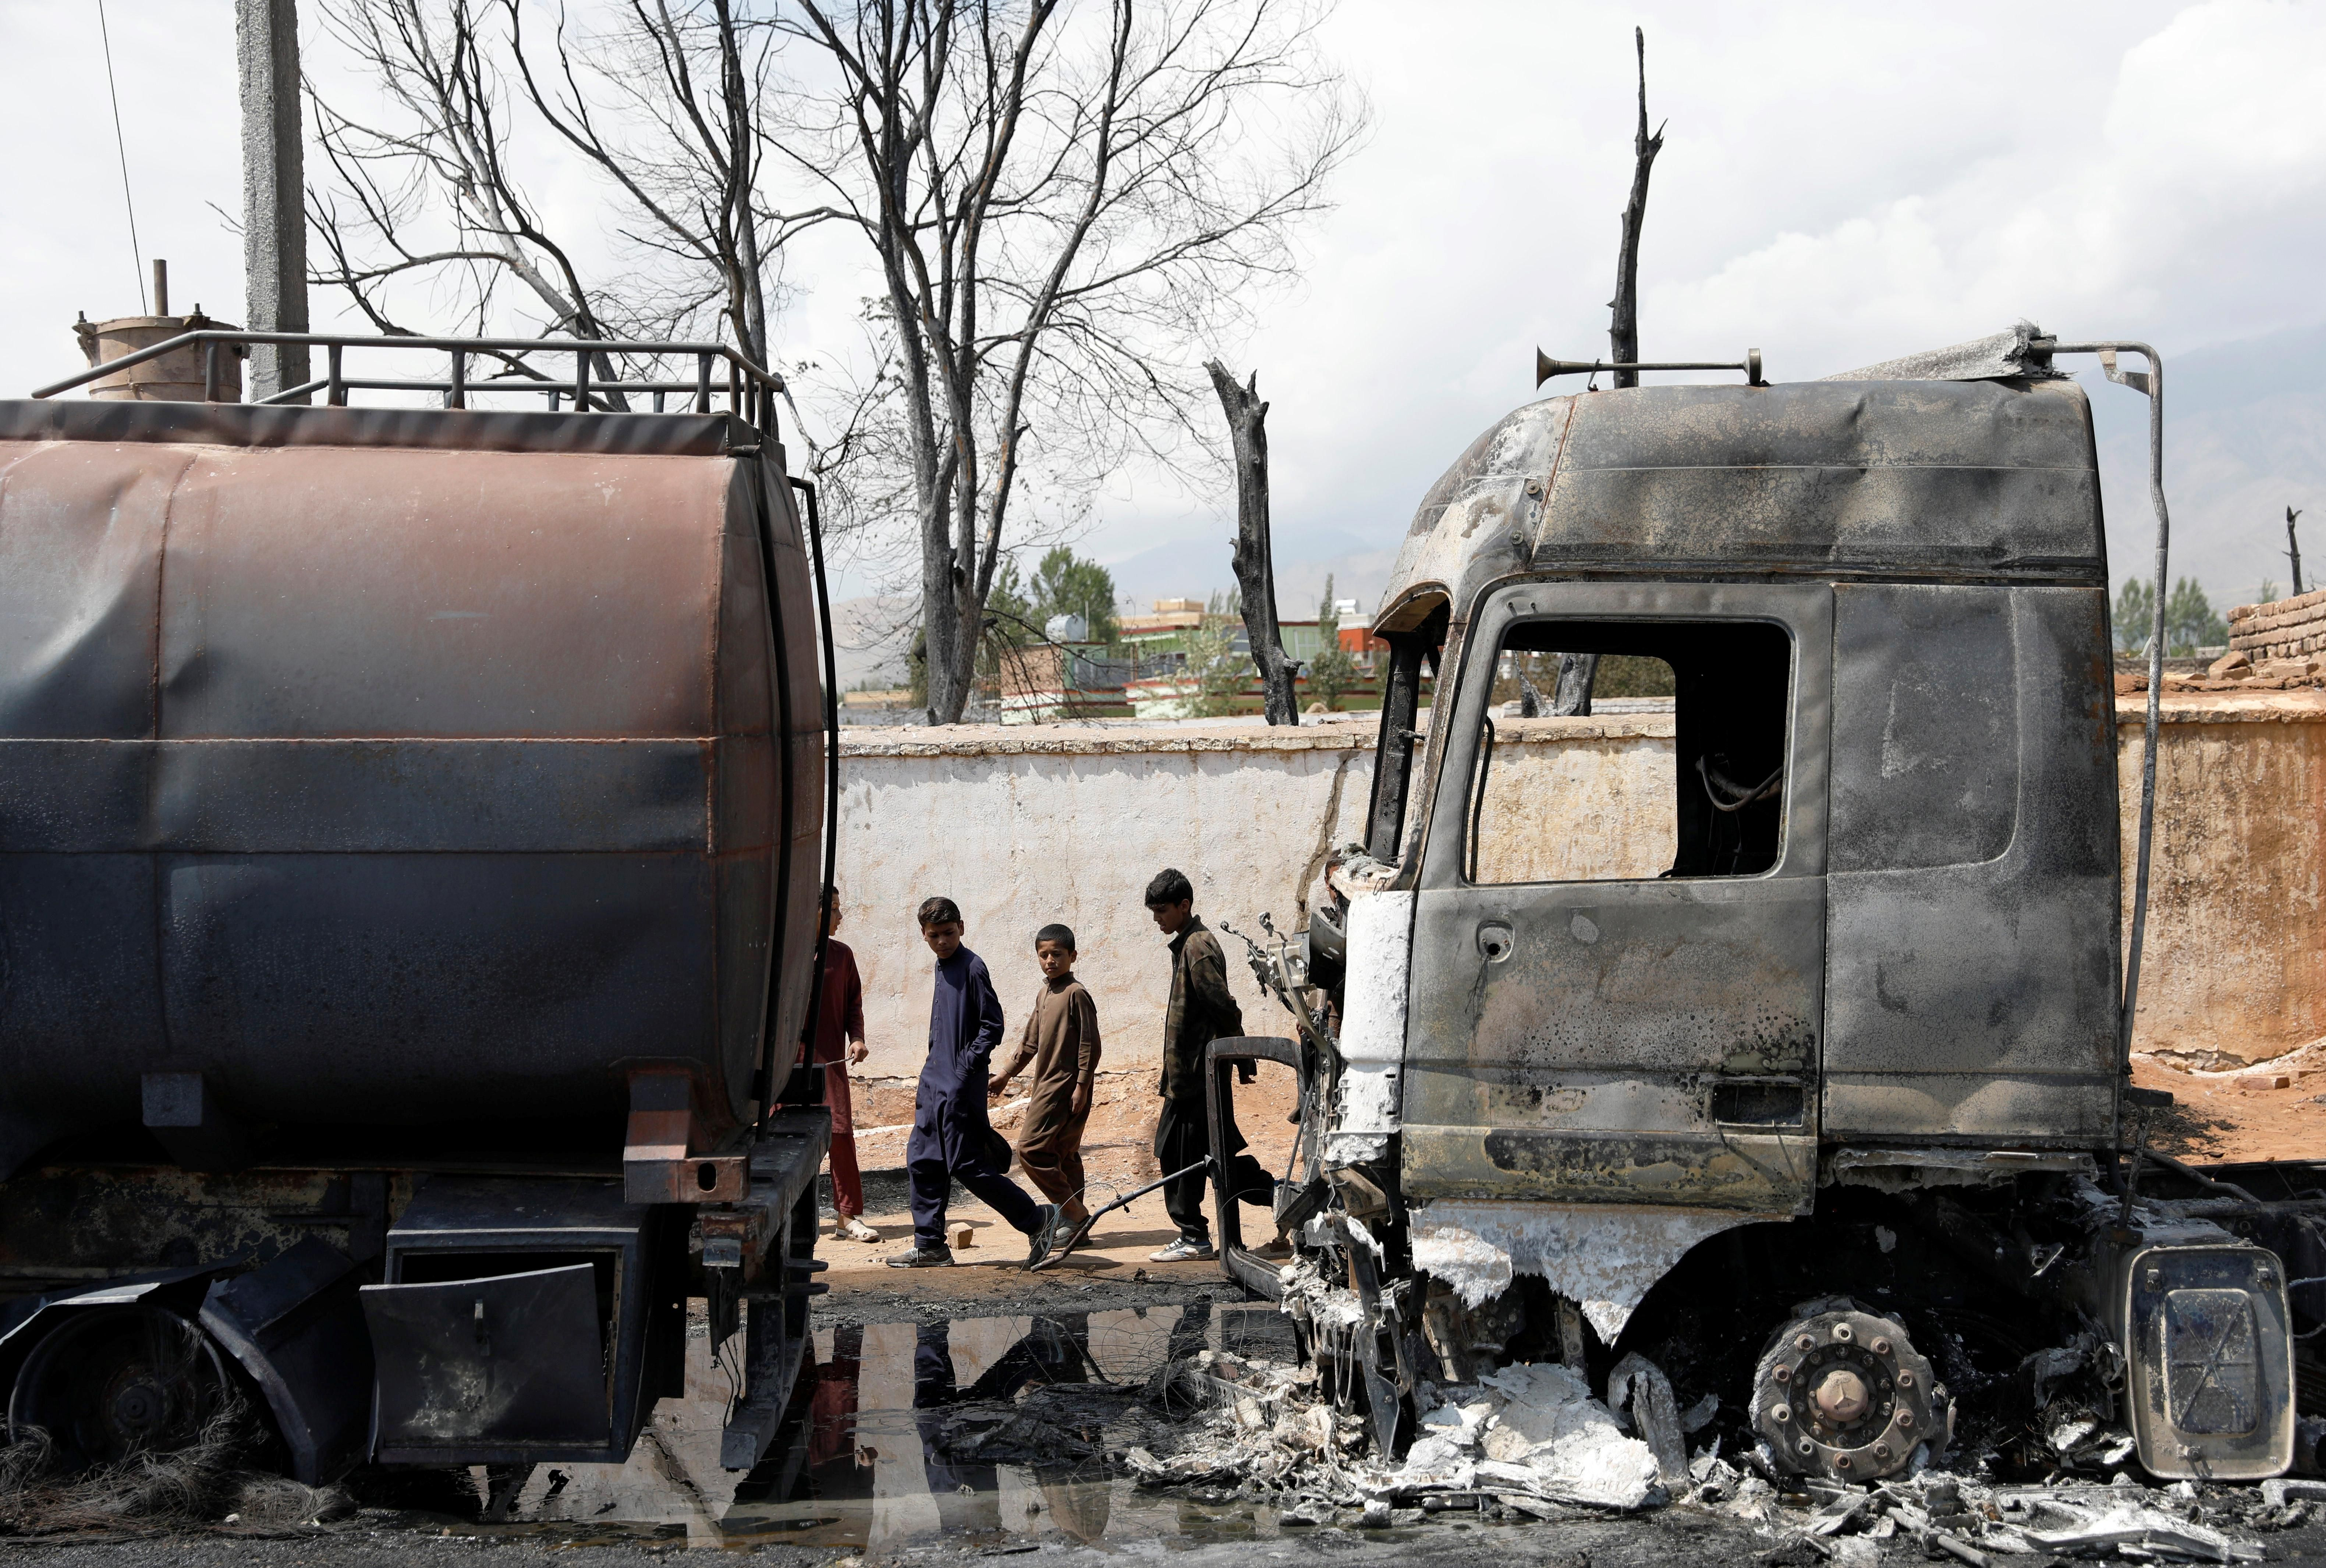 Boys walk past burnt fuel tankers after an overnight fire, on the outskirts of Kabul, Afghanistan May 2, 2021.